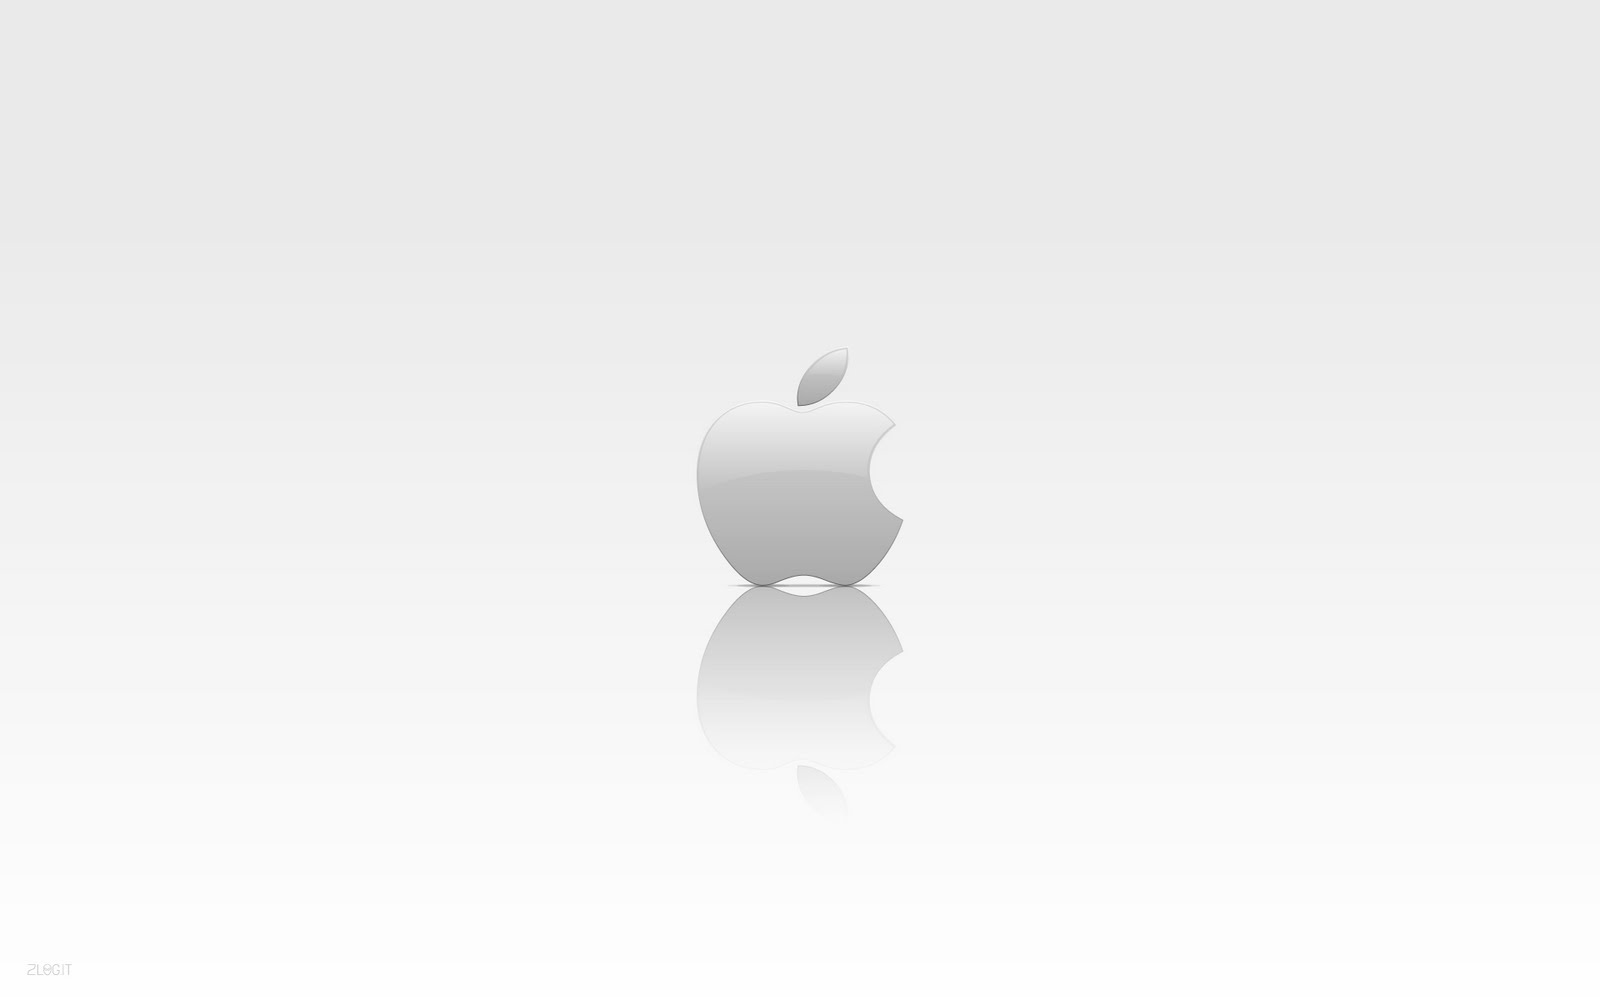 apple wallpaper cu - photo #17